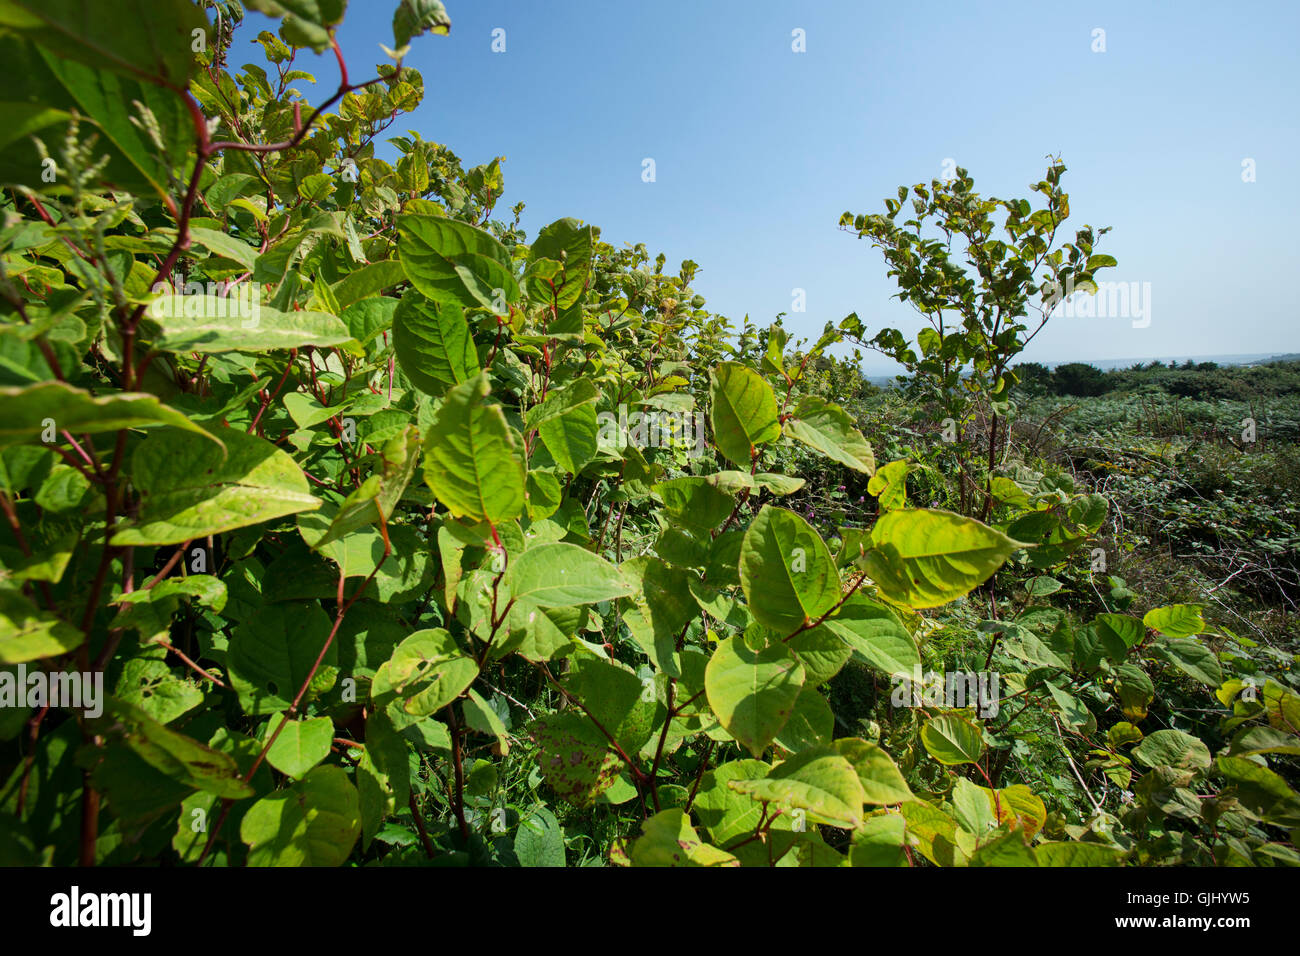 Growing to over six feet tall Japanese Knotweed is an invasive plant which can seriously damage buildings and construction Stock Photo